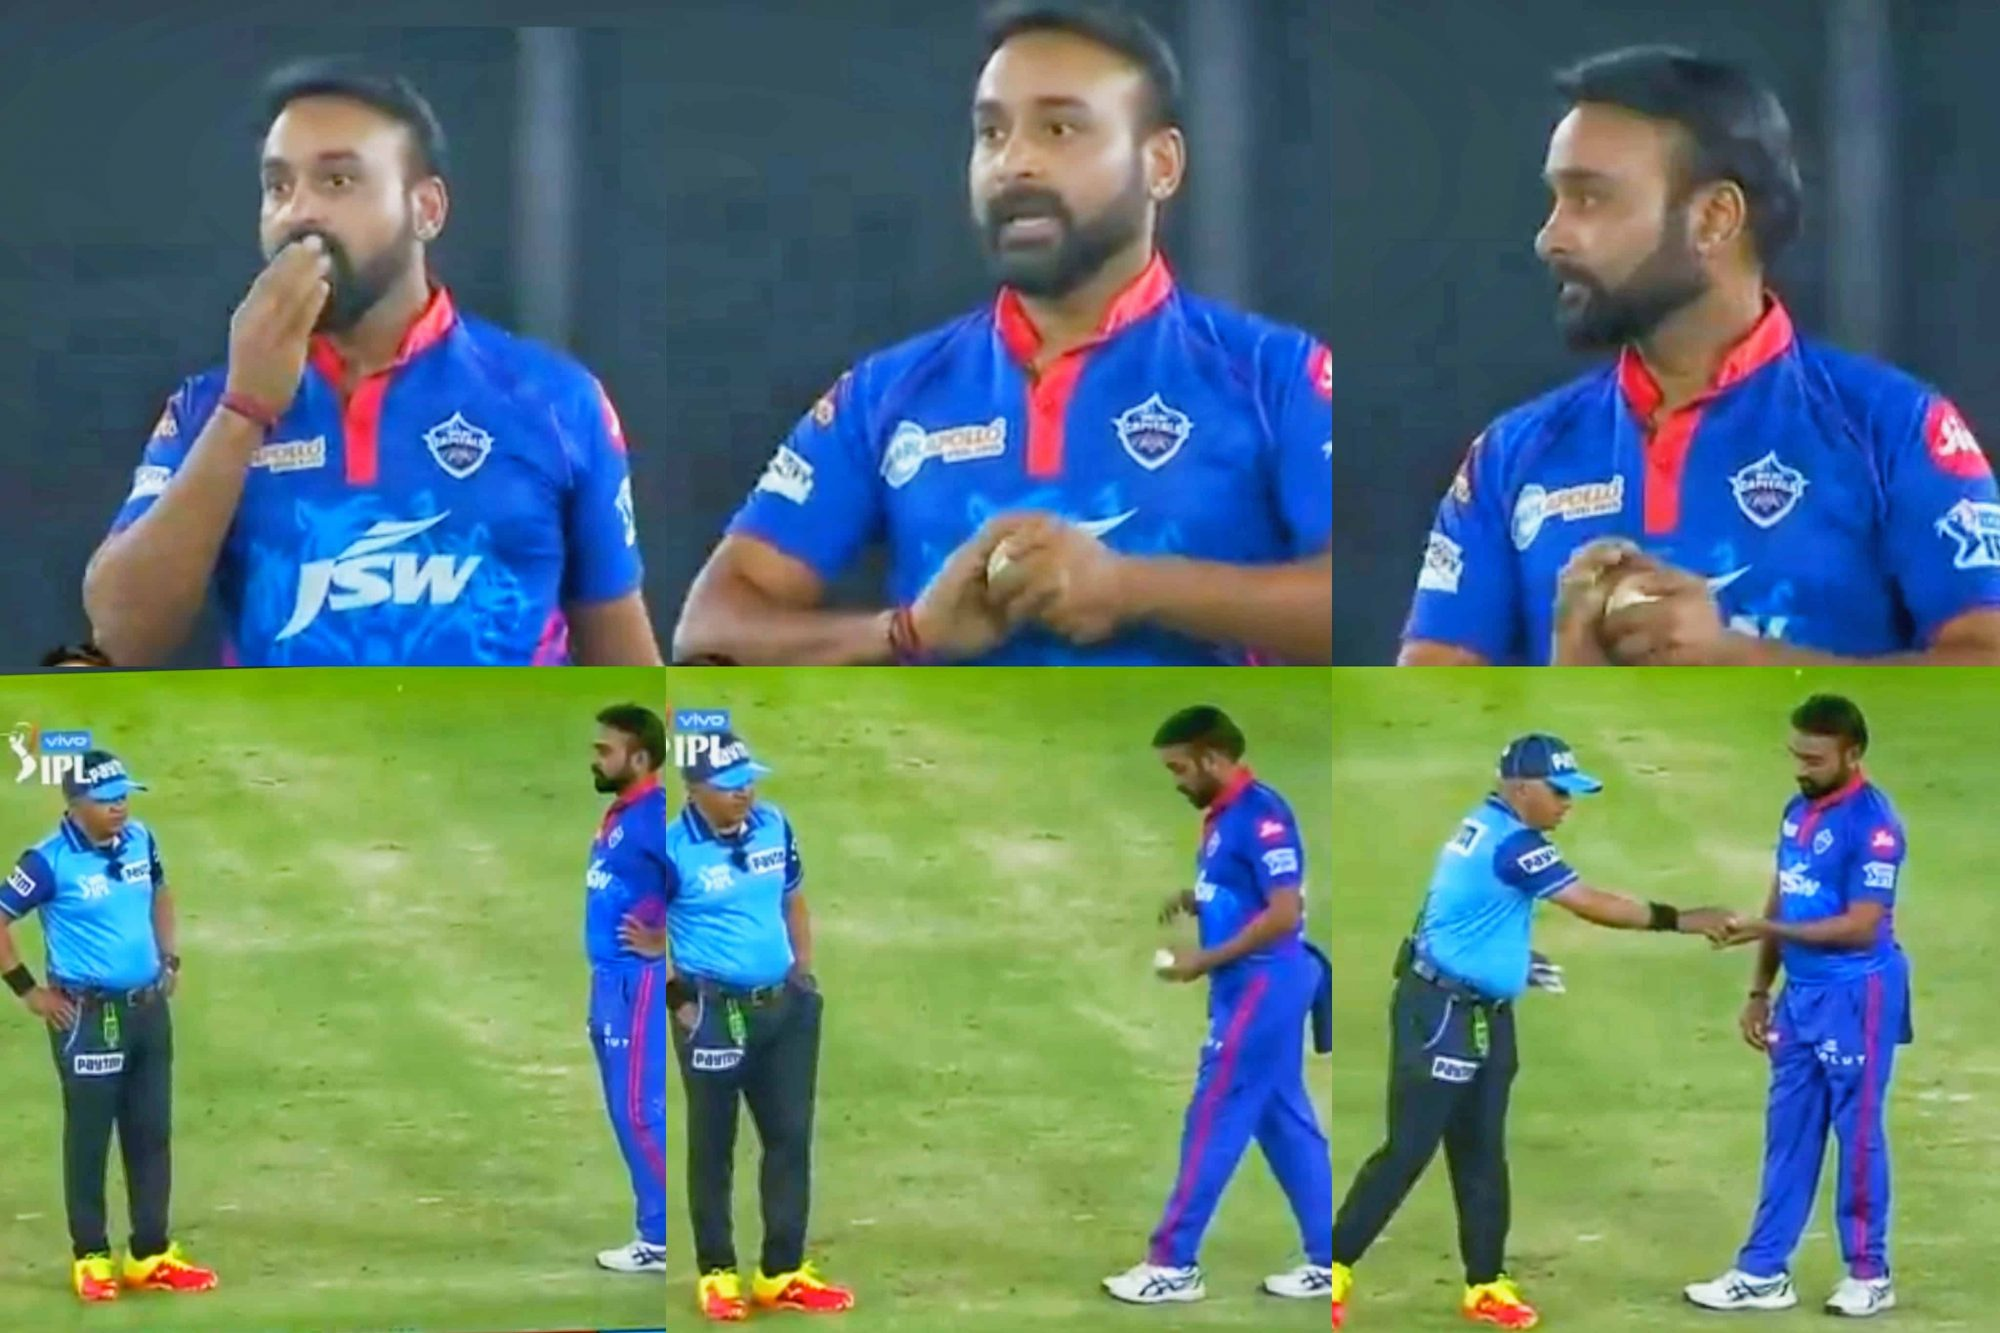 IPL 2021, DC vs RCB: Amit Mishra Receives A Warning From Umpire; Here Is The Reason